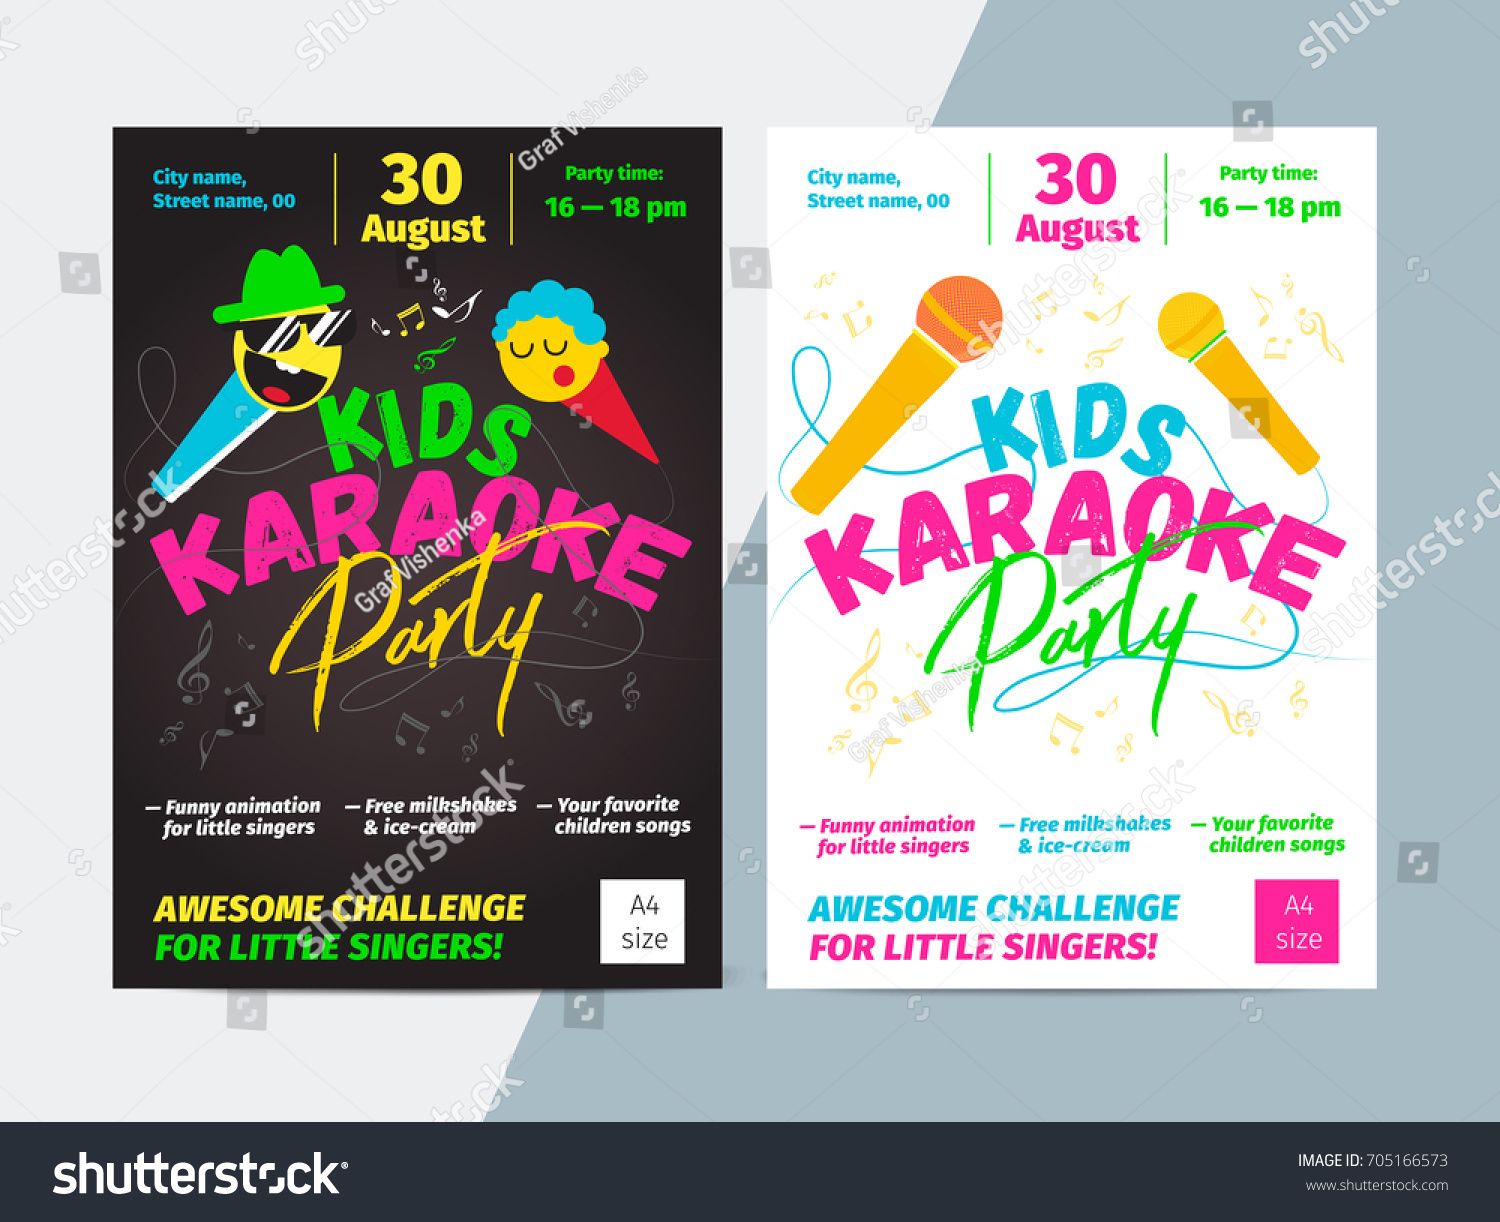 kids karaoke party flyer microphone bright のベクター画像素材